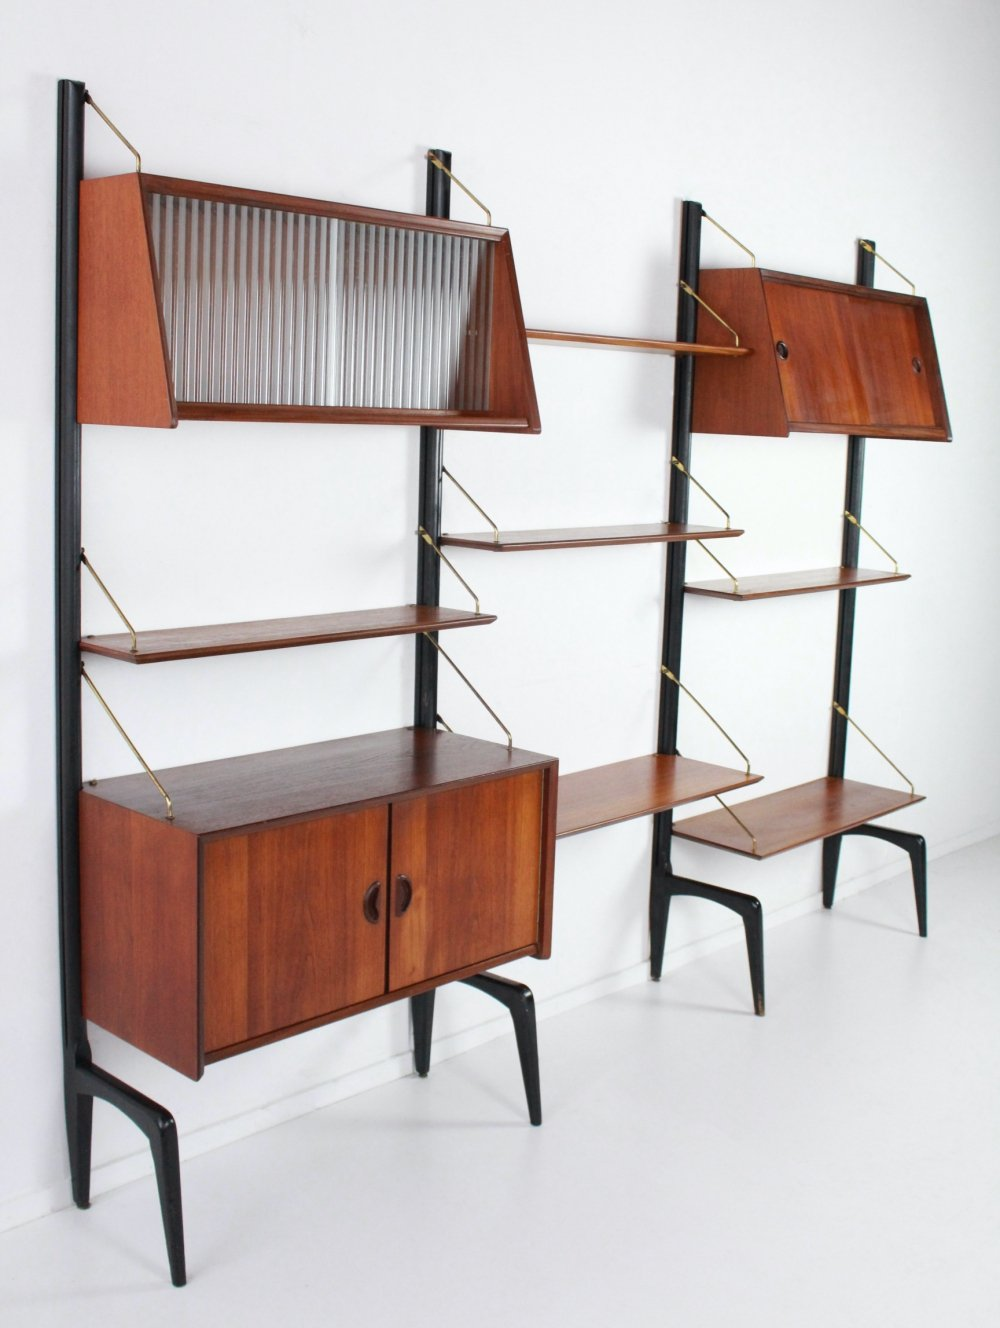 Wallunit by Louis van Teeffelen for Wébé Holland